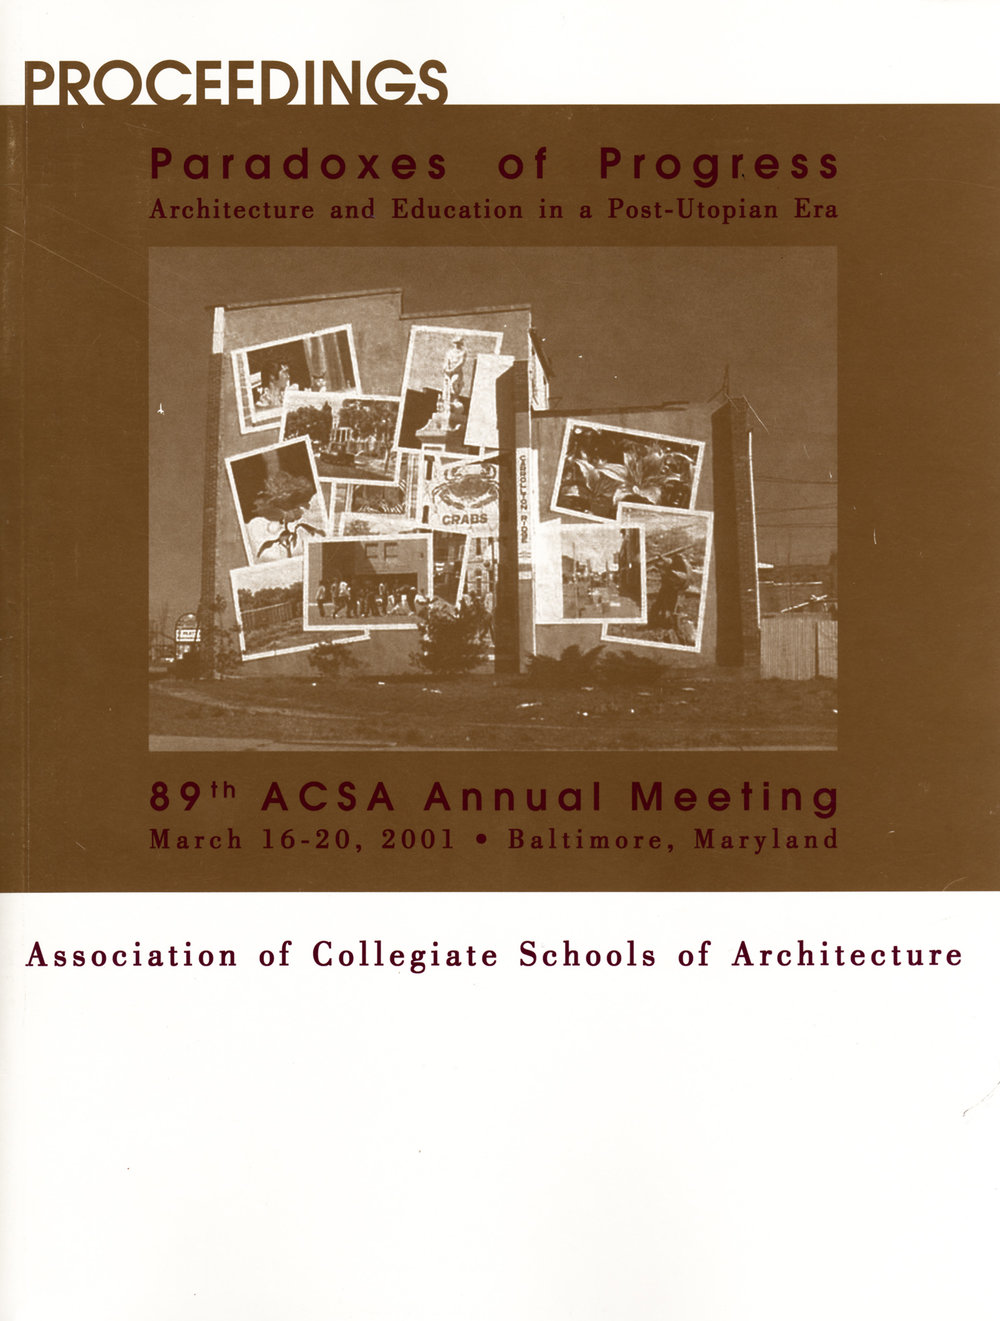 ACSA 89th Annual Meeting001.jpg